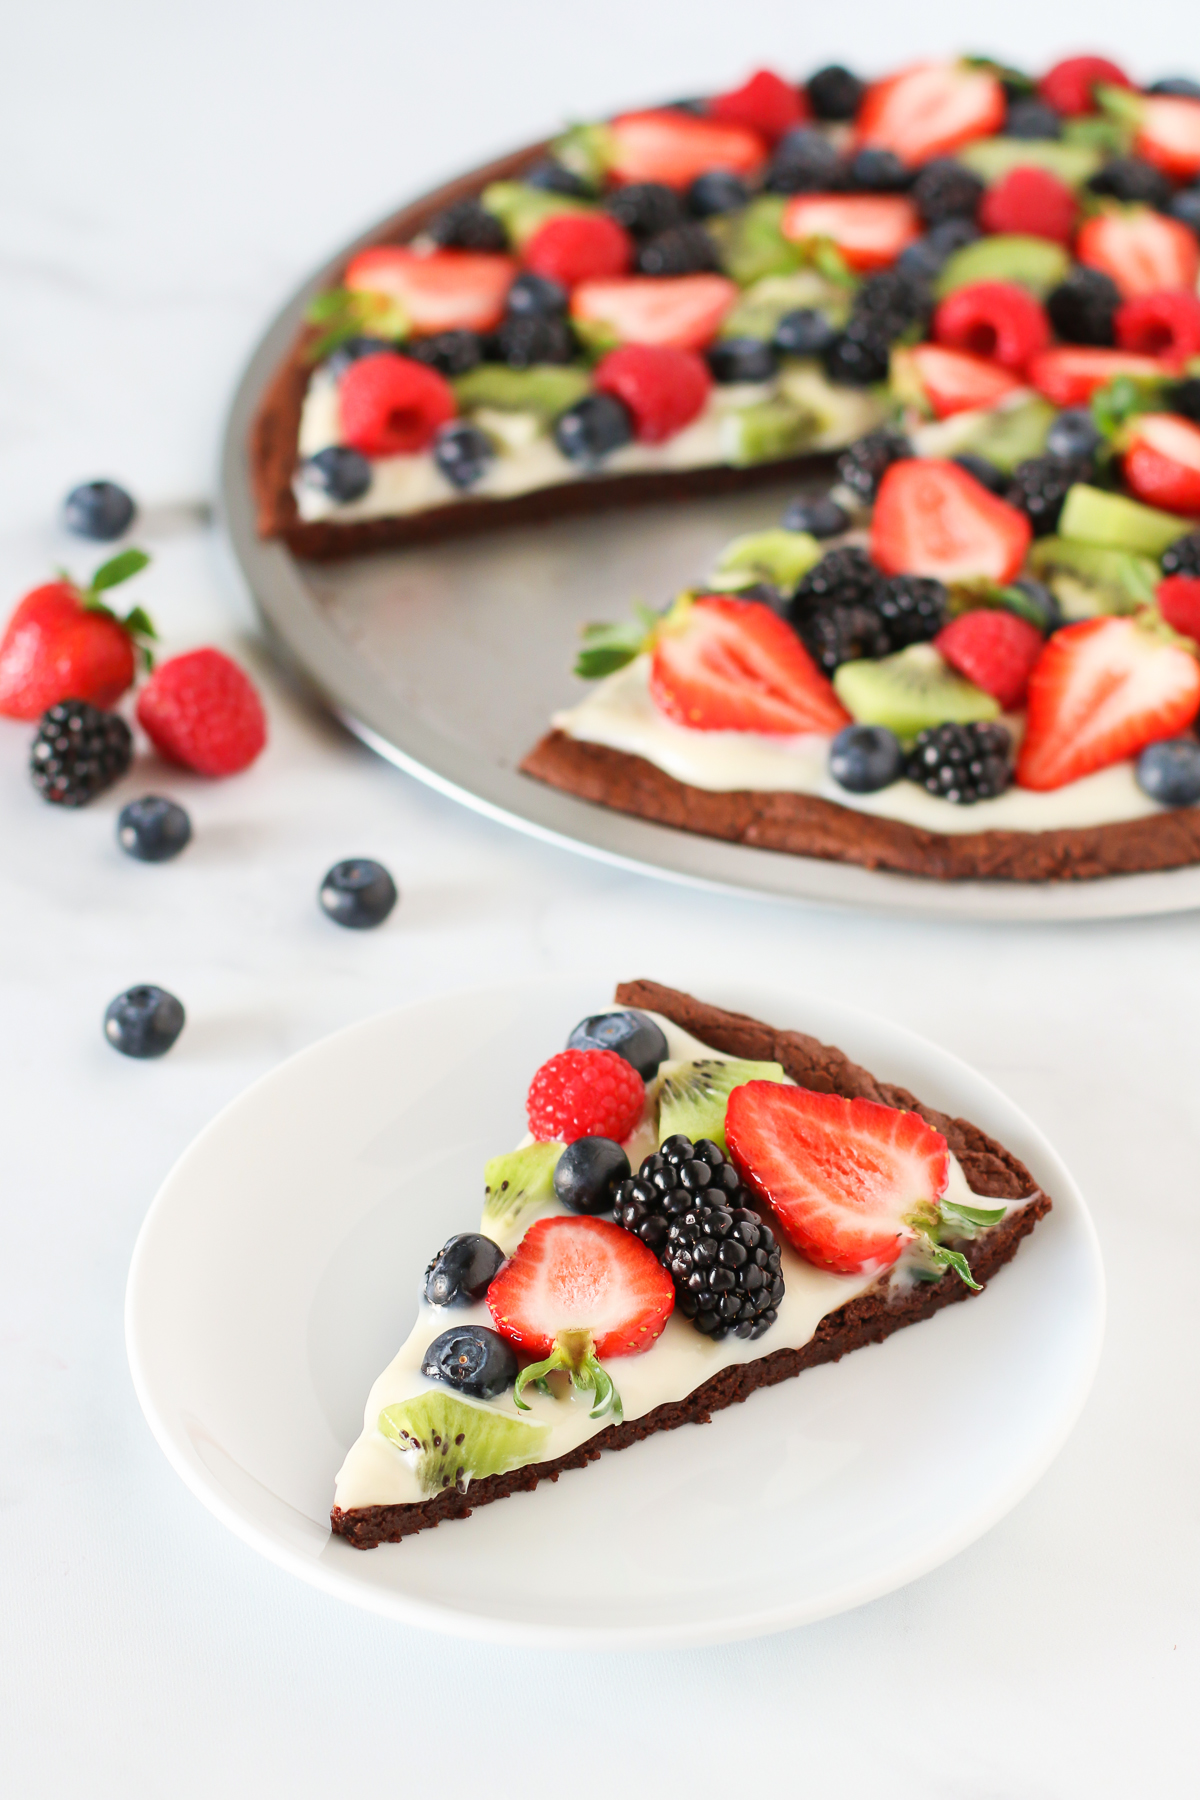 Gluten Free Vegan Brownie Fruit Pizza. Did you say pizza for dessert? I'm in!